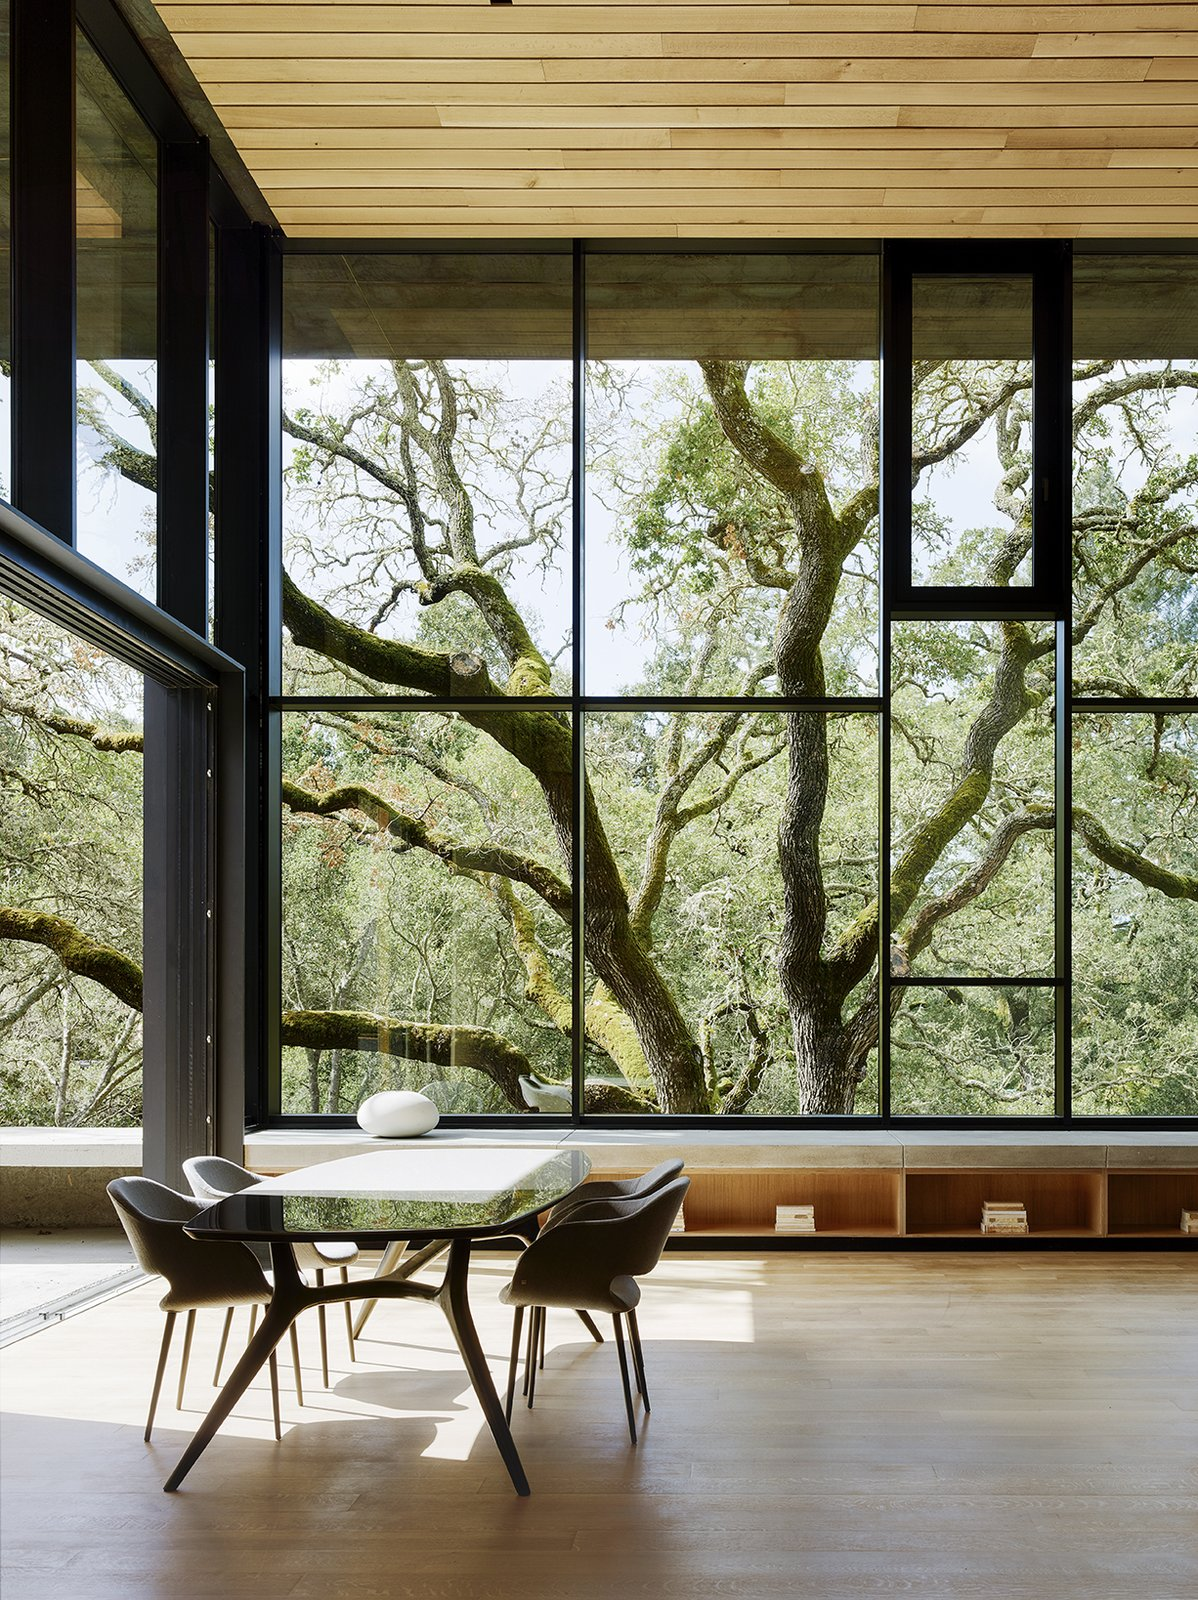 cor-ten steel home faulkner architects interior